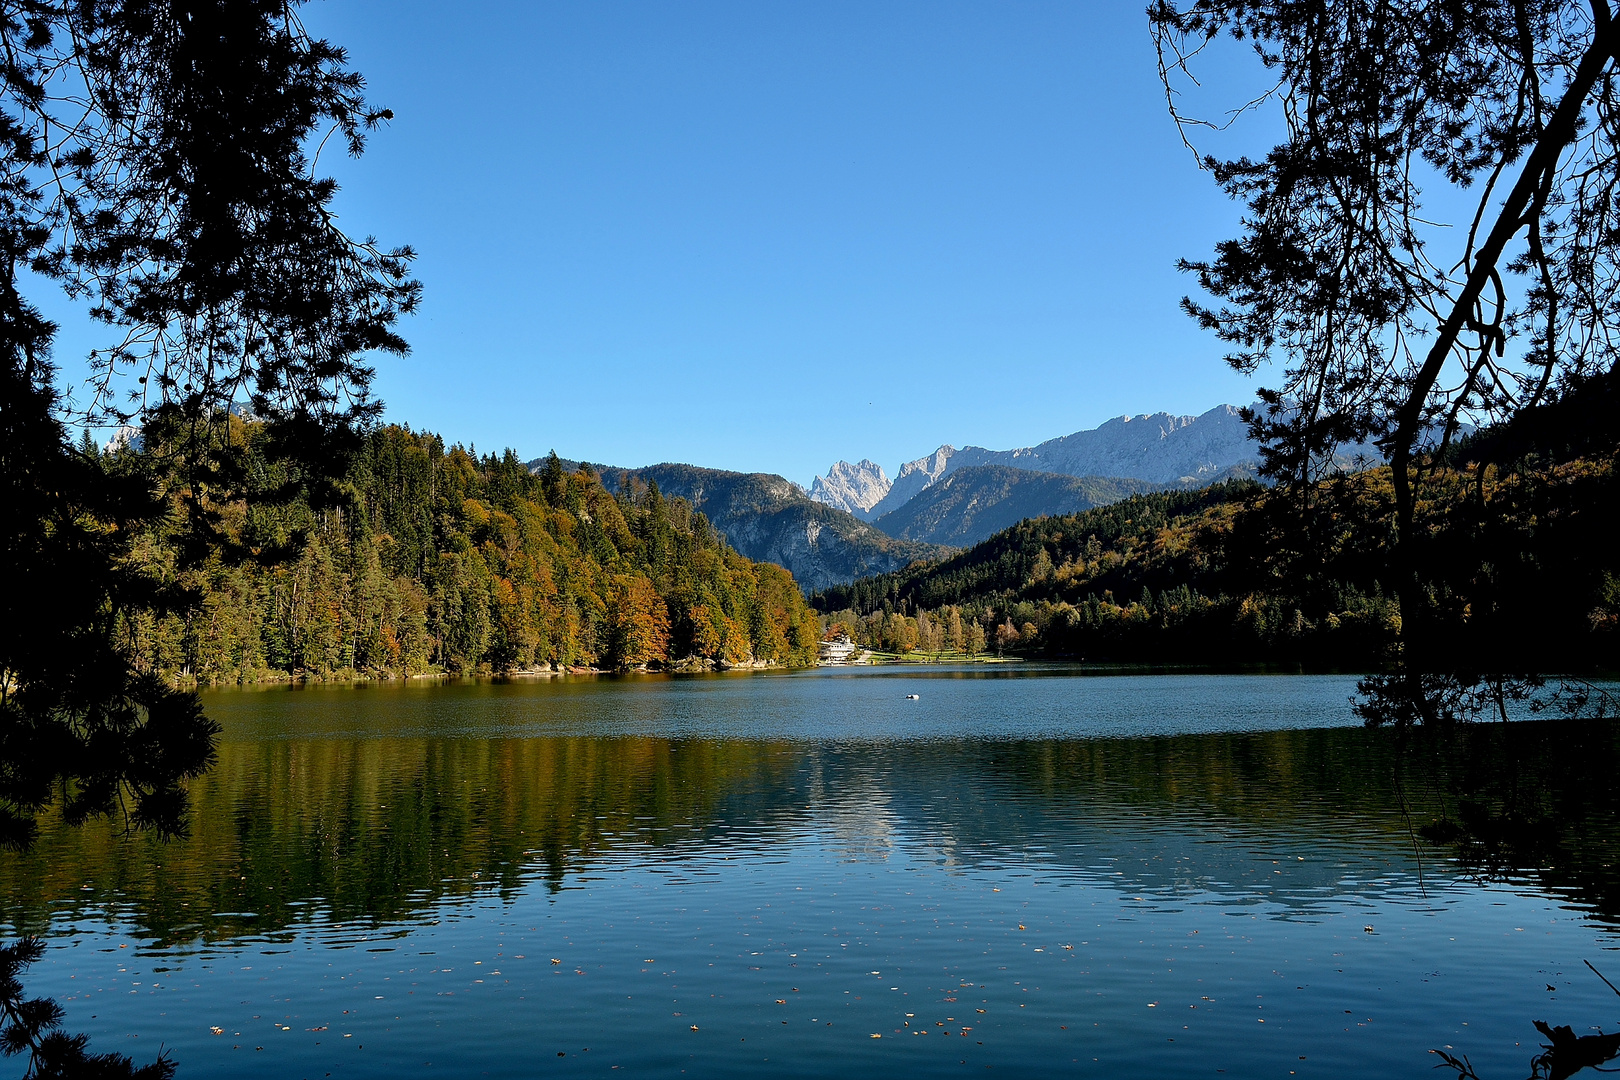 Am Hechtsee 2014